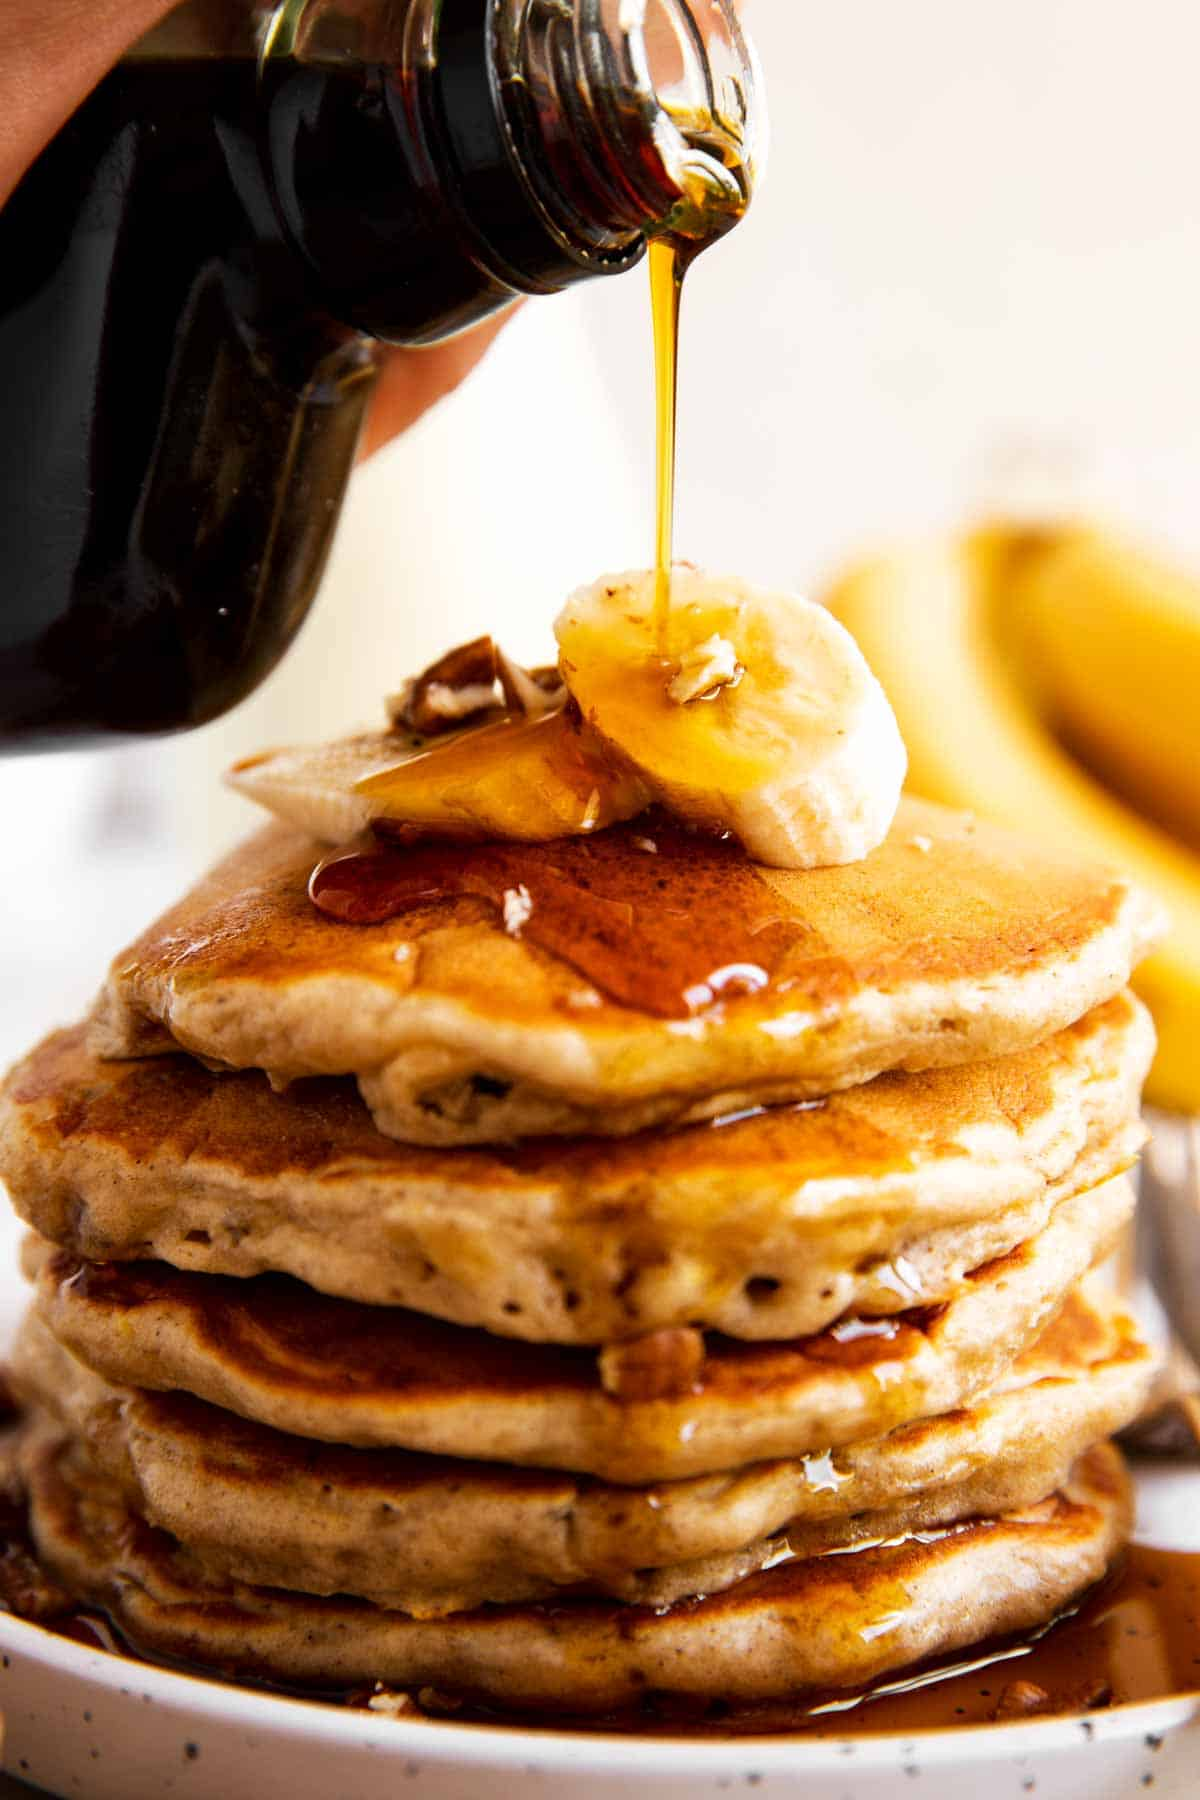 maple syrup pouring over stack of banana pancakes